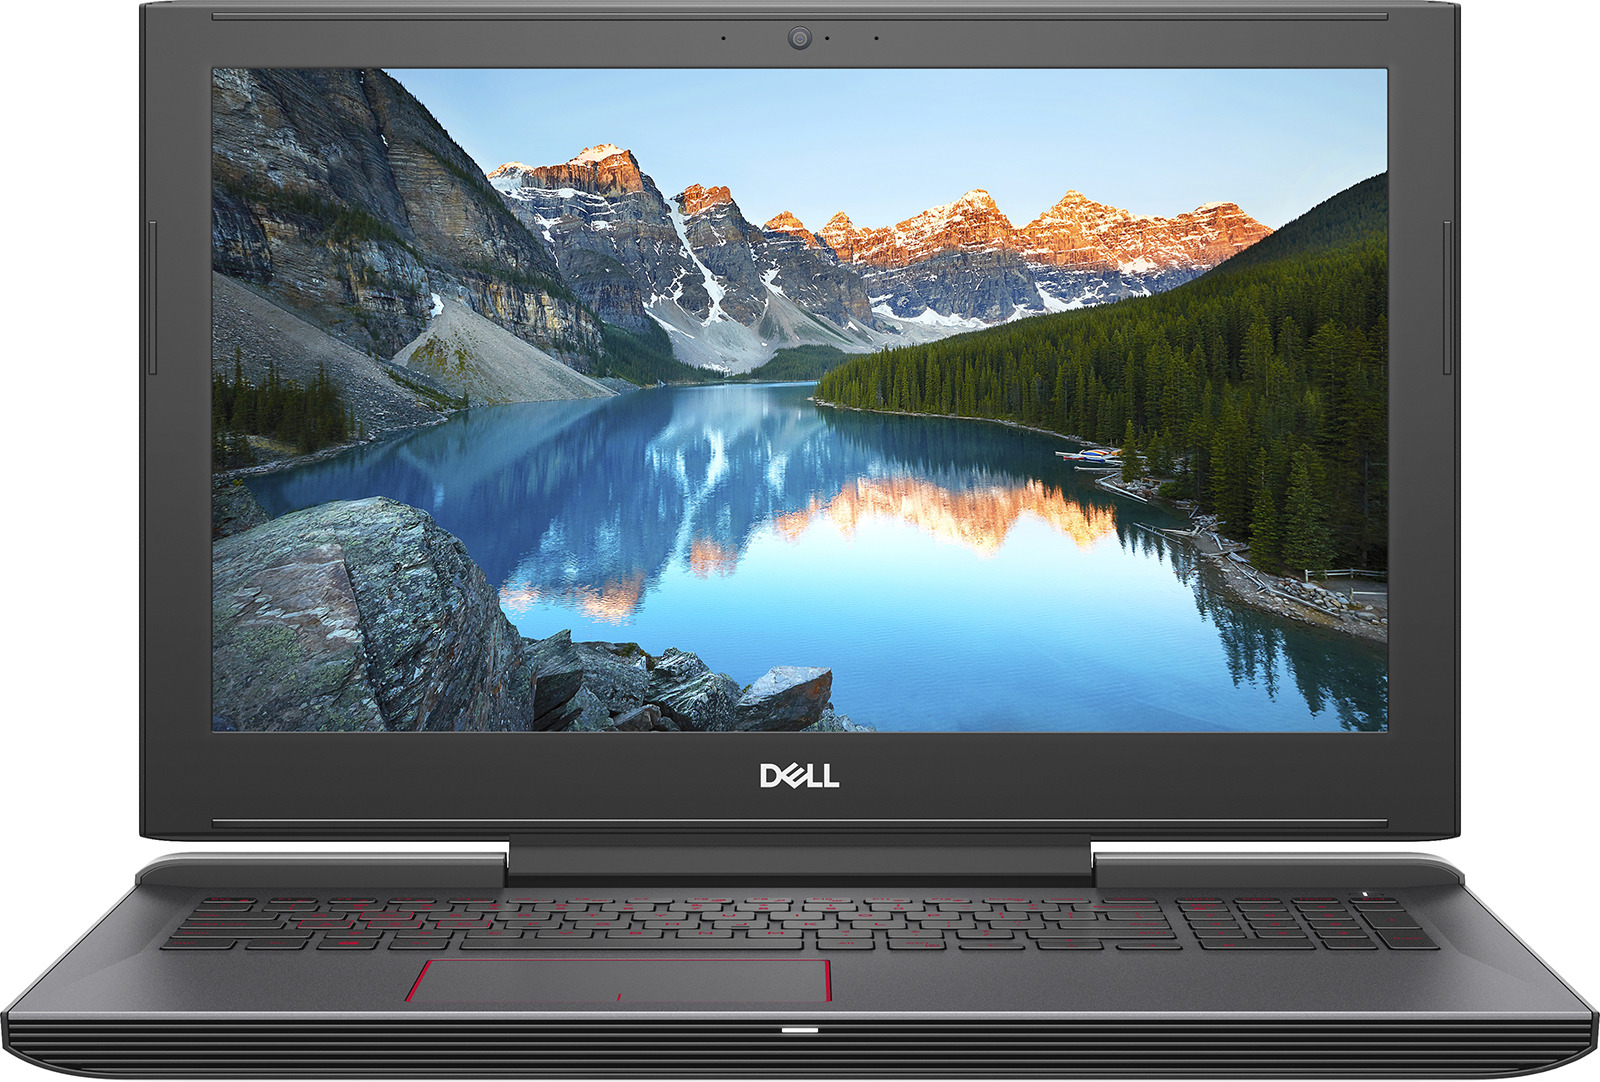 15.6 Игровой ноутбук Dell G5 5587 G515-7527, красный ноутбук alienware m15 5522 core i7 8750h 8gb 1tb 128gb ssd nv gtx1060 6gb 15 6 fullhd win10 red